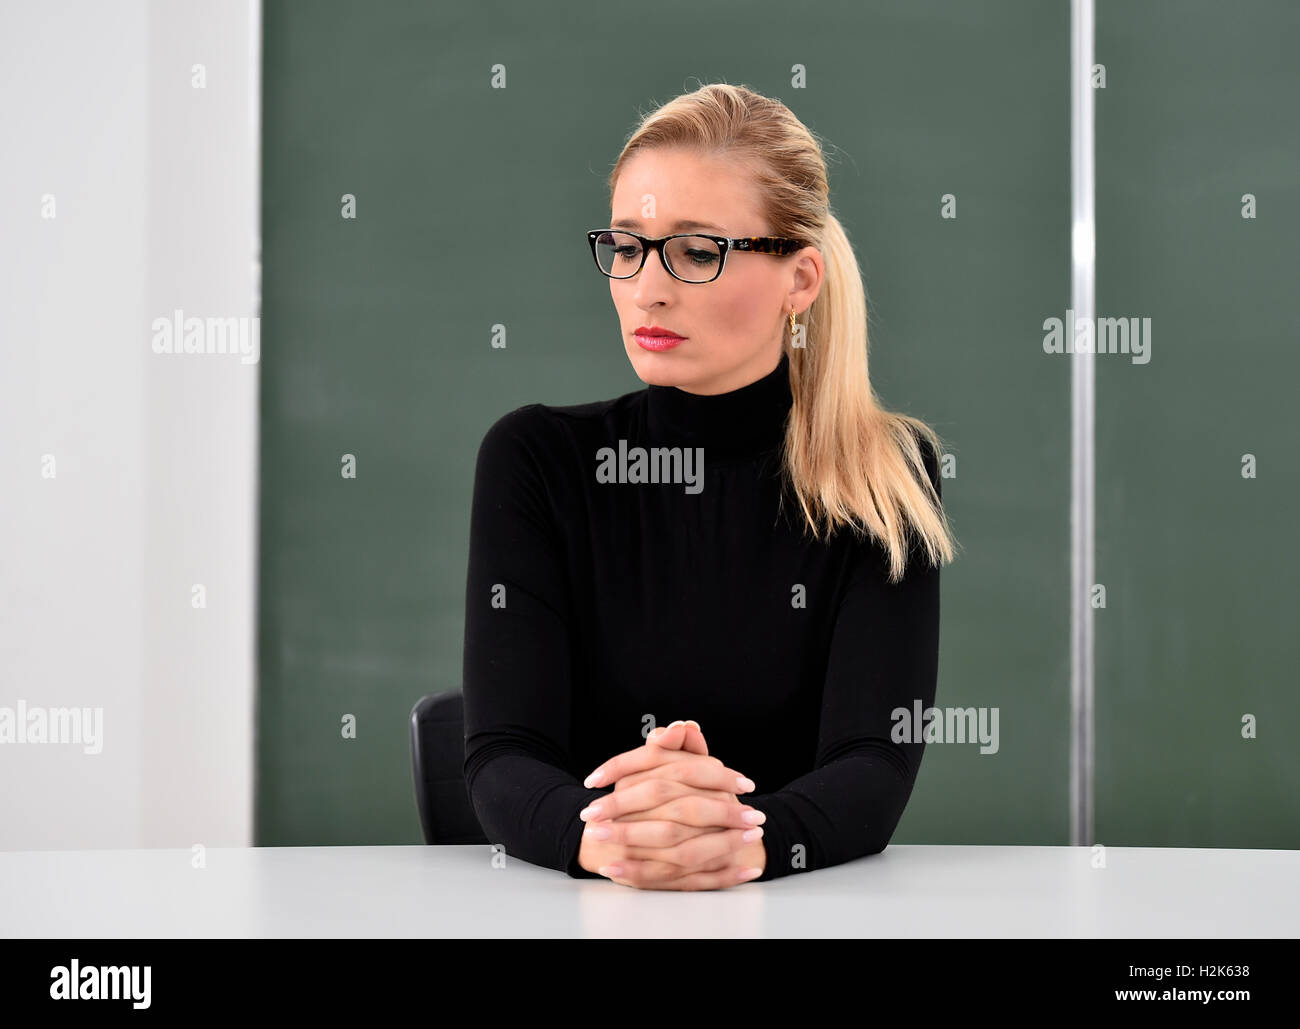 Stressed, thoughtful teacher, tutor, trainer in front of a blackboard - Stock Image